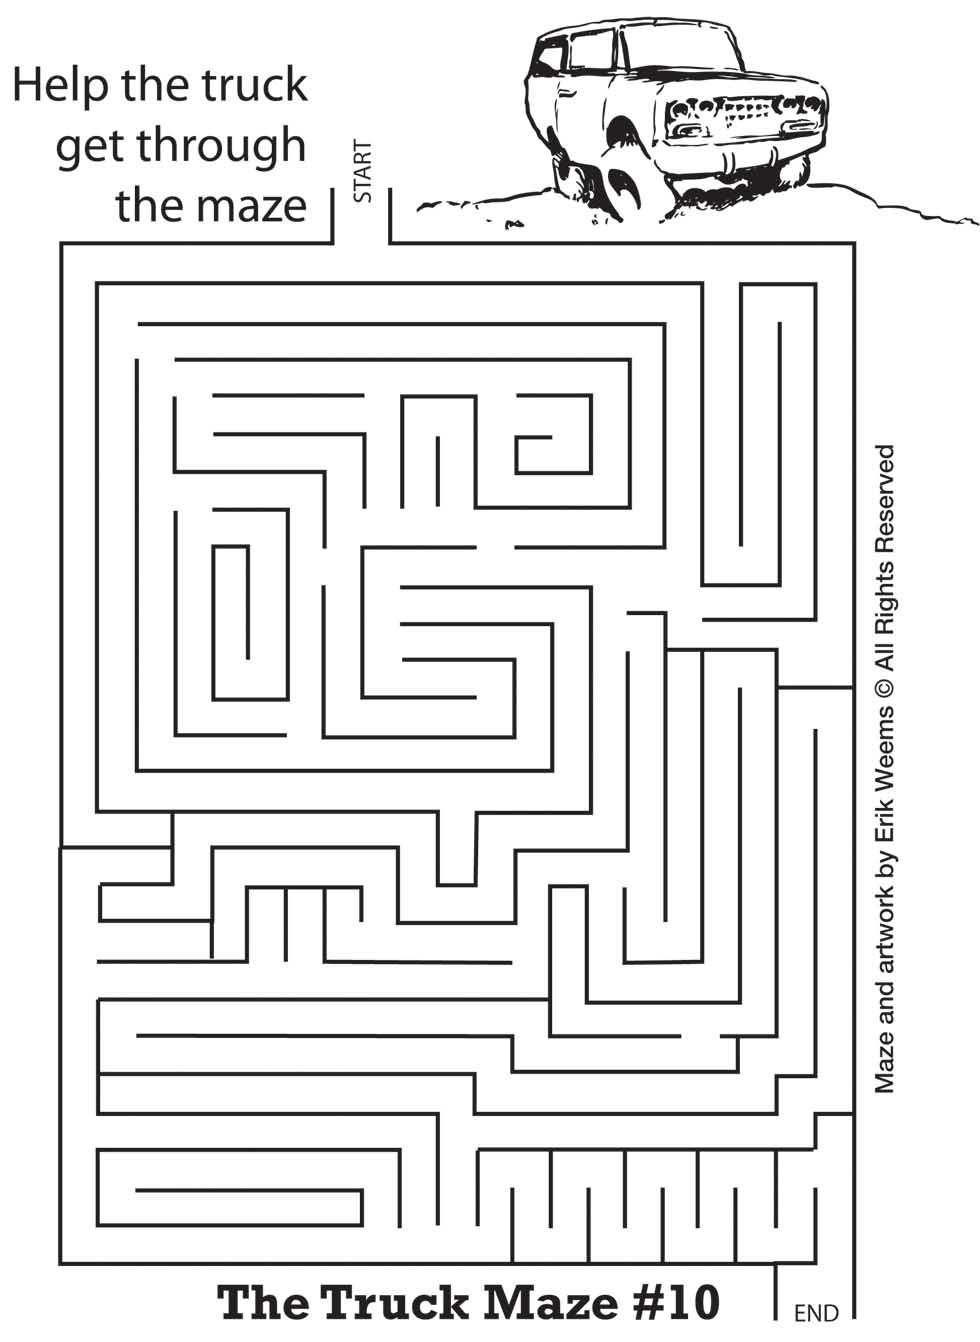 The Truck Maze - help the truck move through the maze